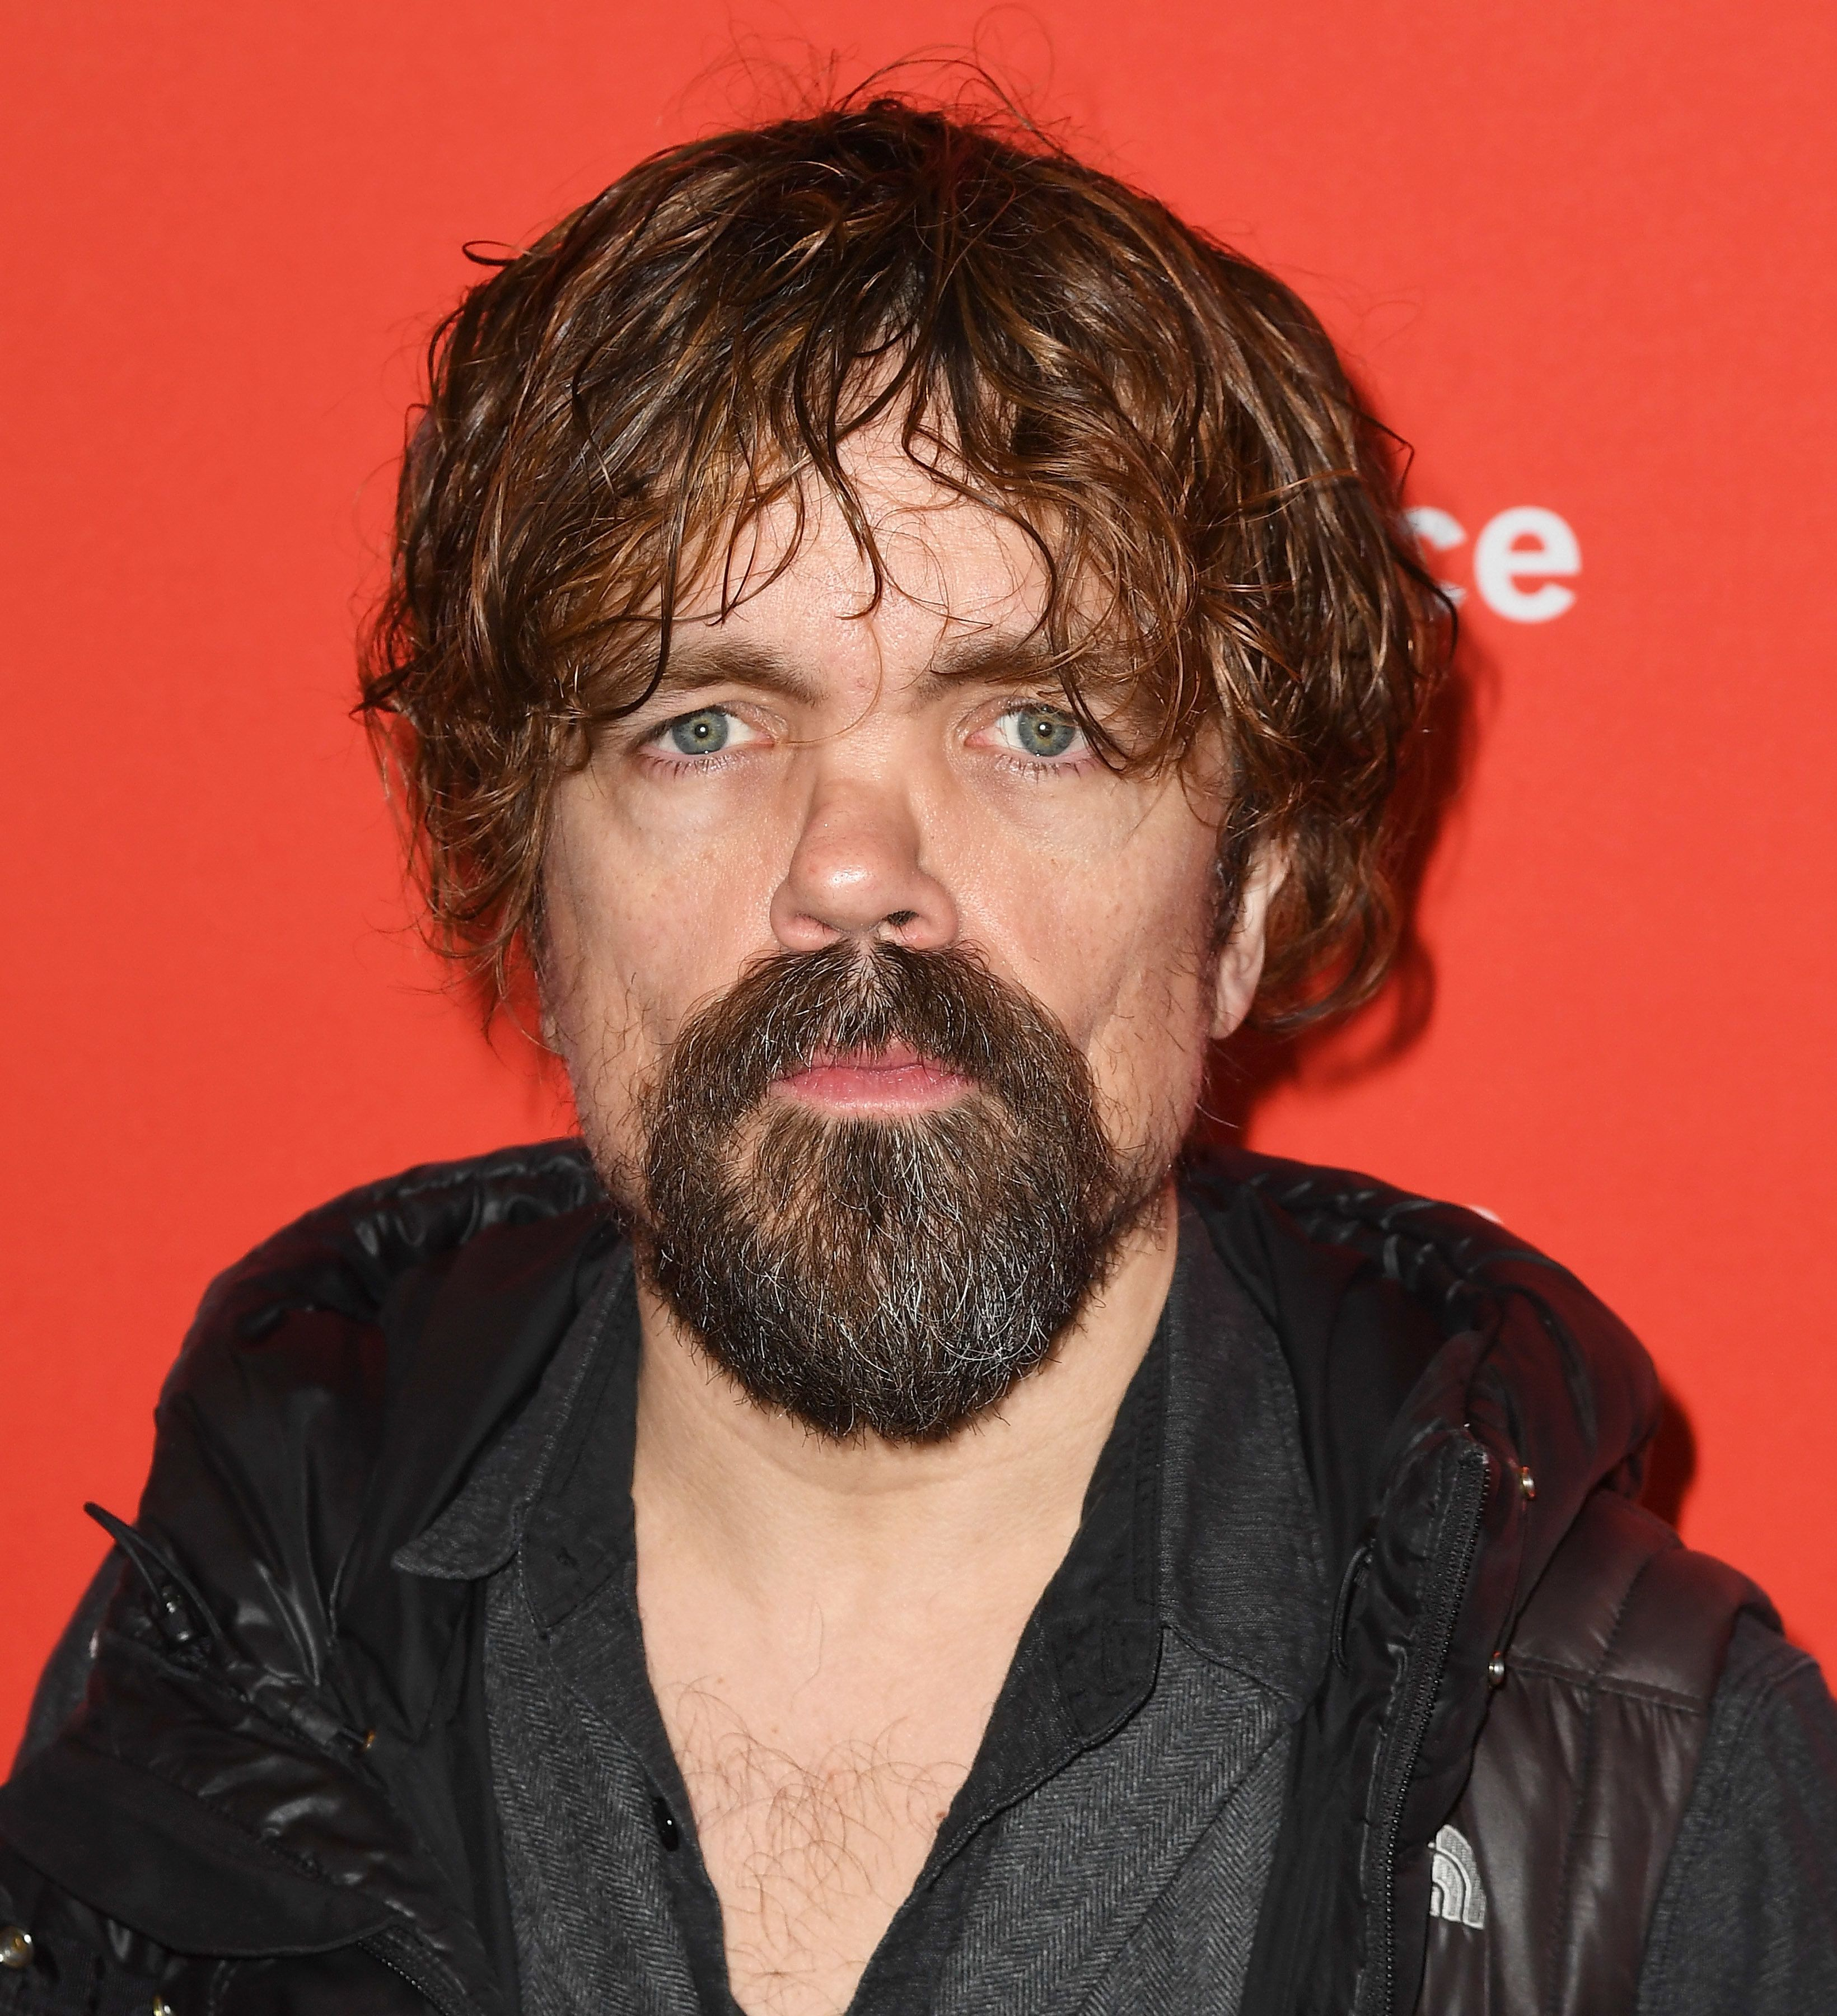 Sony Mounting 'Rumpelstiltskin' Movie With Peter Dinklage Attached To Star